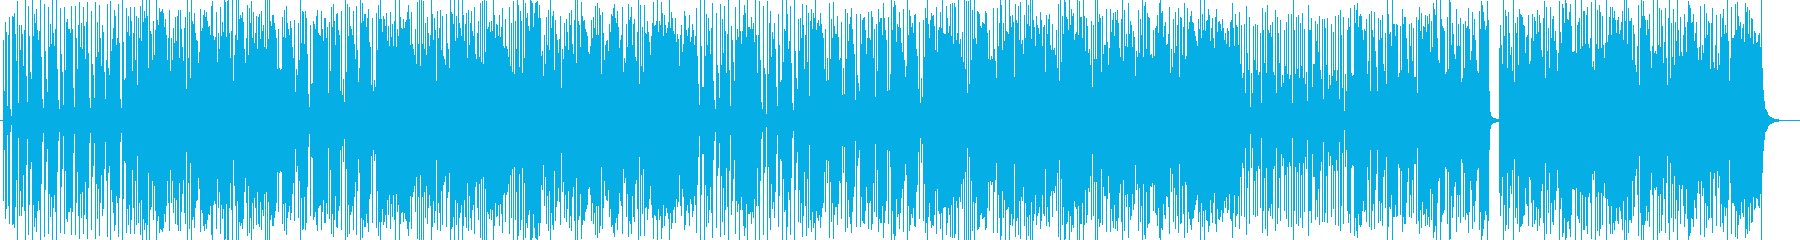 Pop and fancy synthesizer songs's reproduced waveform